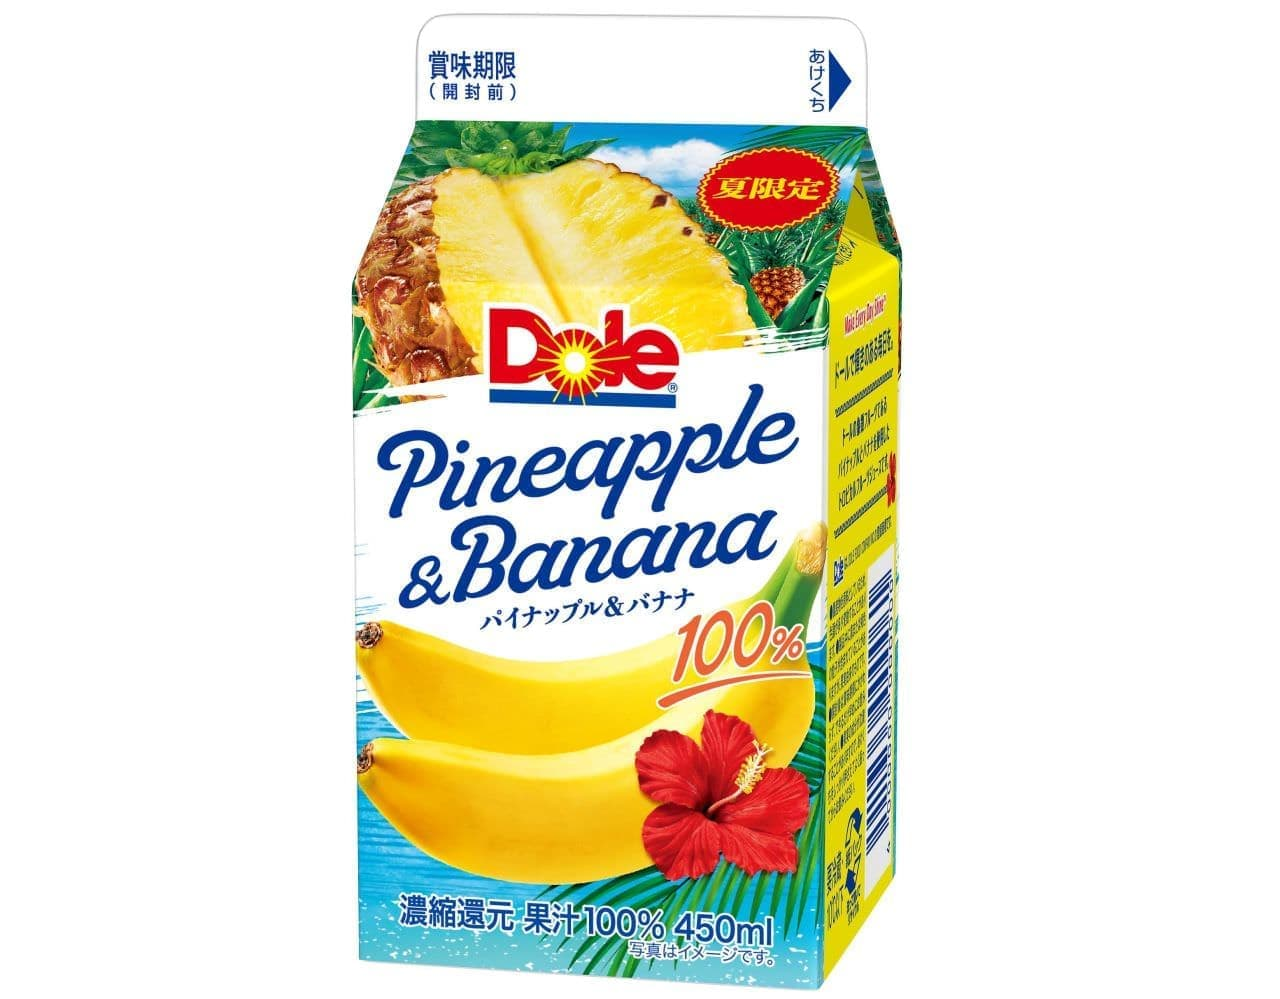 雪印メグミルク「Dole Pineapple & Banana 100%」